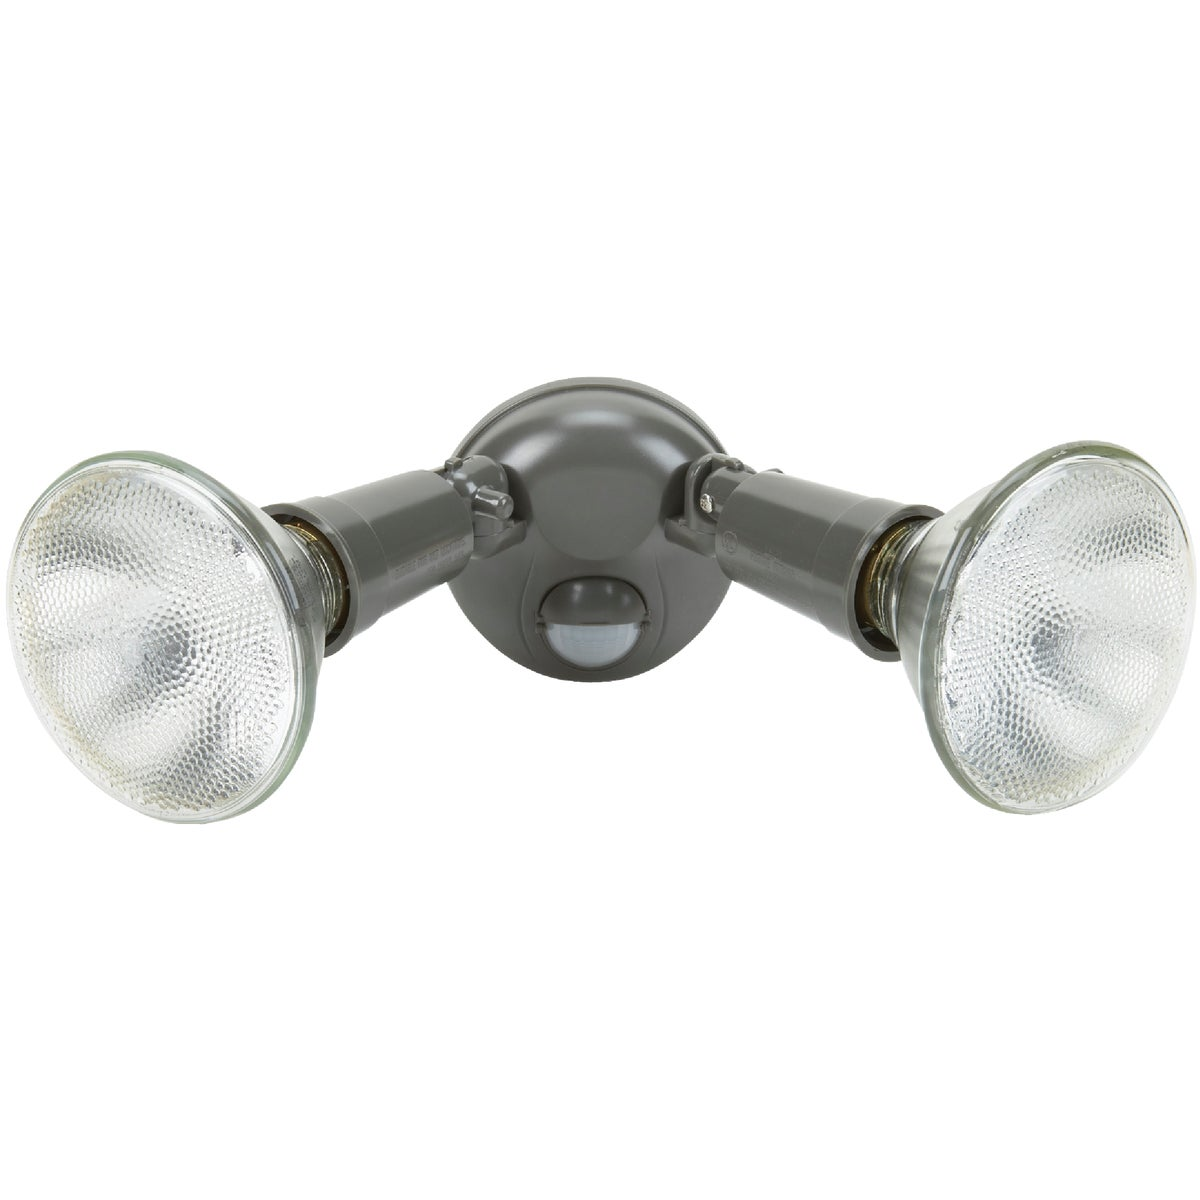 BRZ TWIN MOTION FIXTURE - ED207B by Do it Best